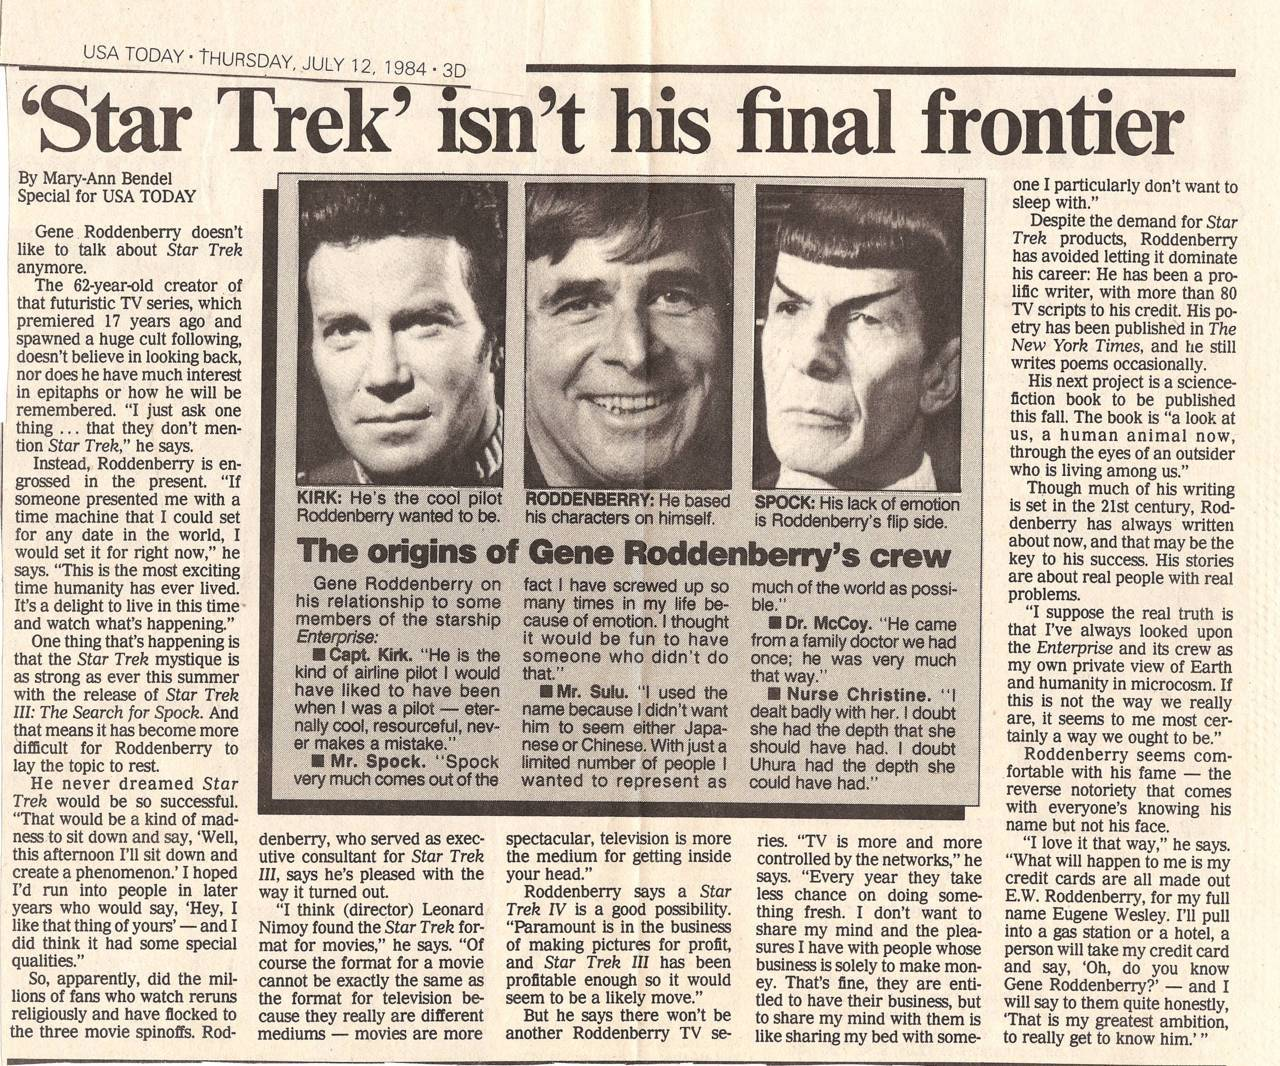 Great article about Gene Roddenberry.